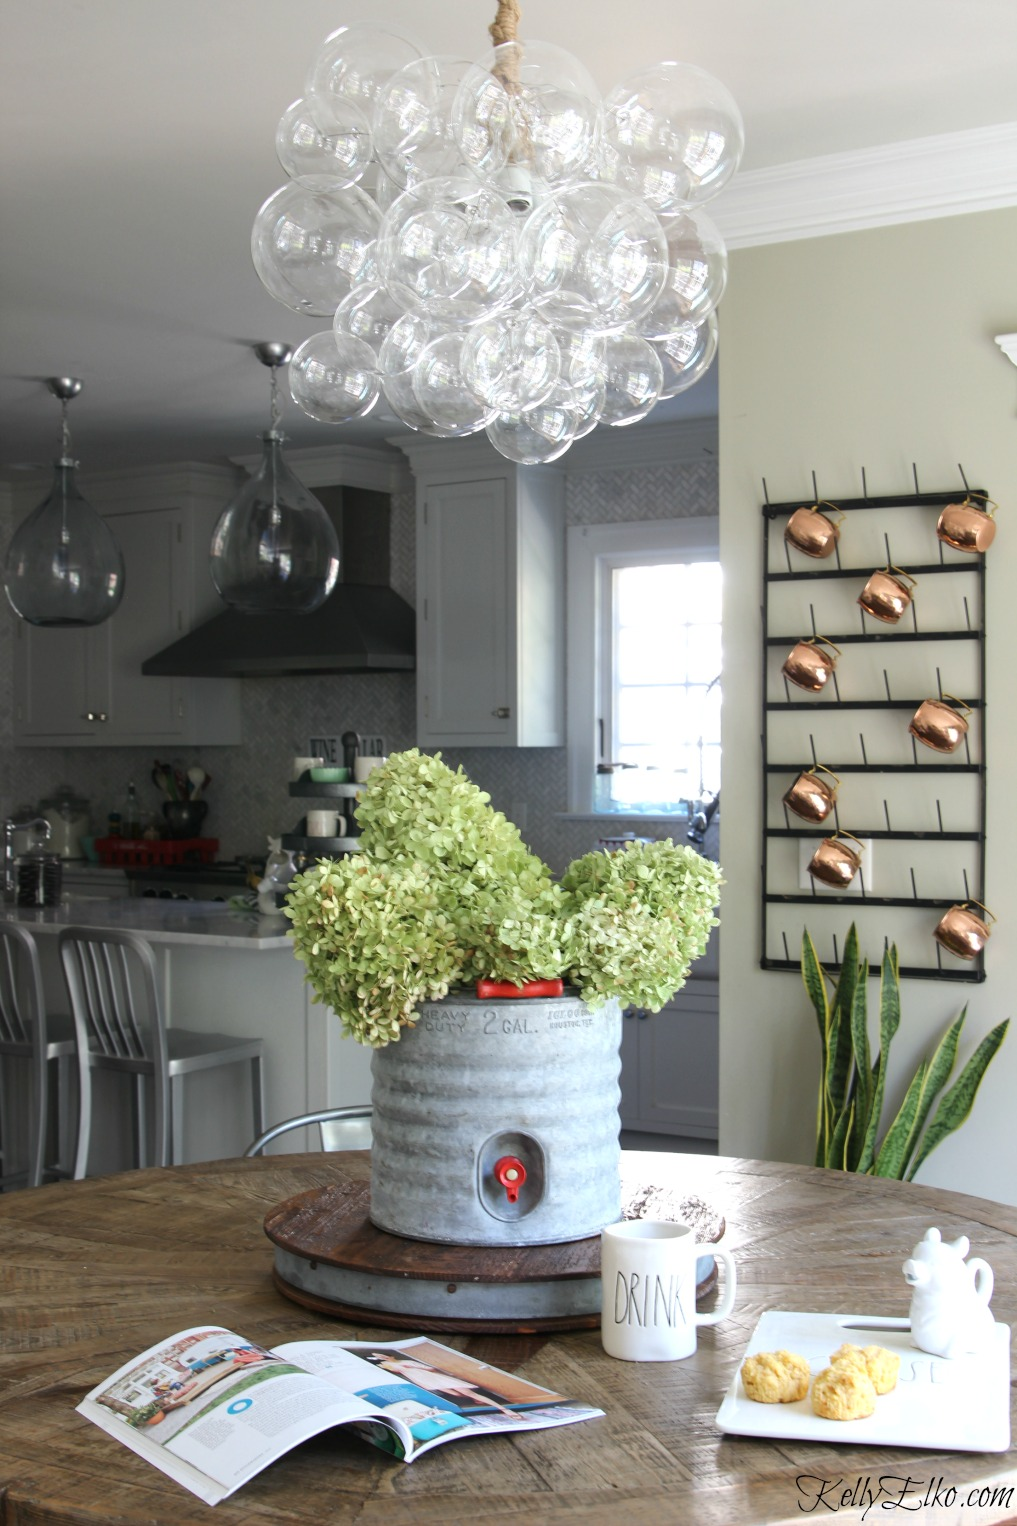 Chandelier Buying Tips - Love the mix of a modern bubble chandelier over a farmhouse table! kellyelko.com